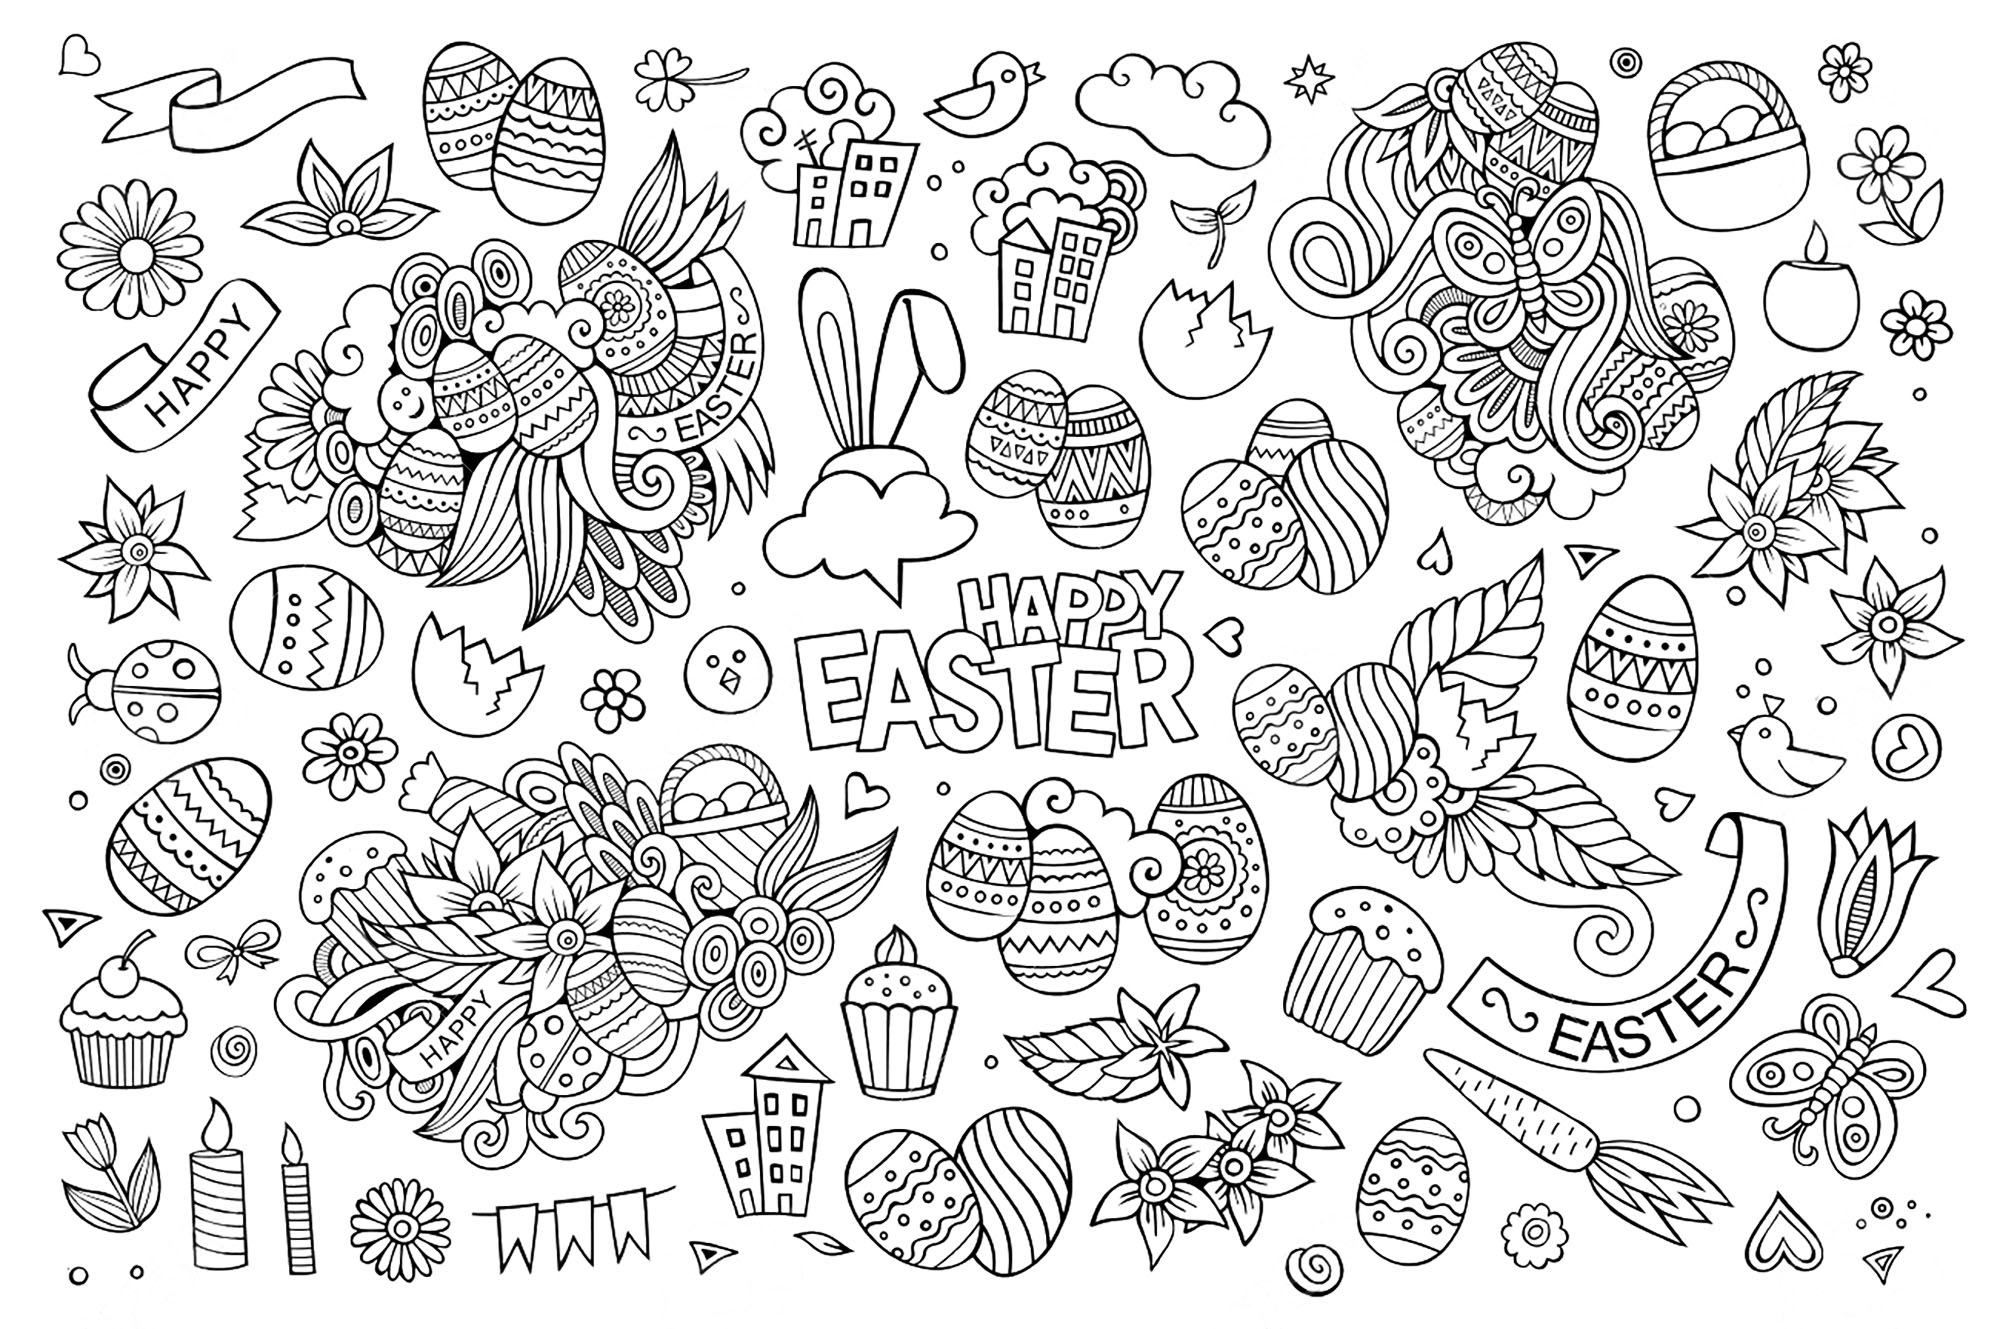 special olympics coloring pages Collection-Easter hand drawn funny symbols and objects eggs cakes flowers 12-n